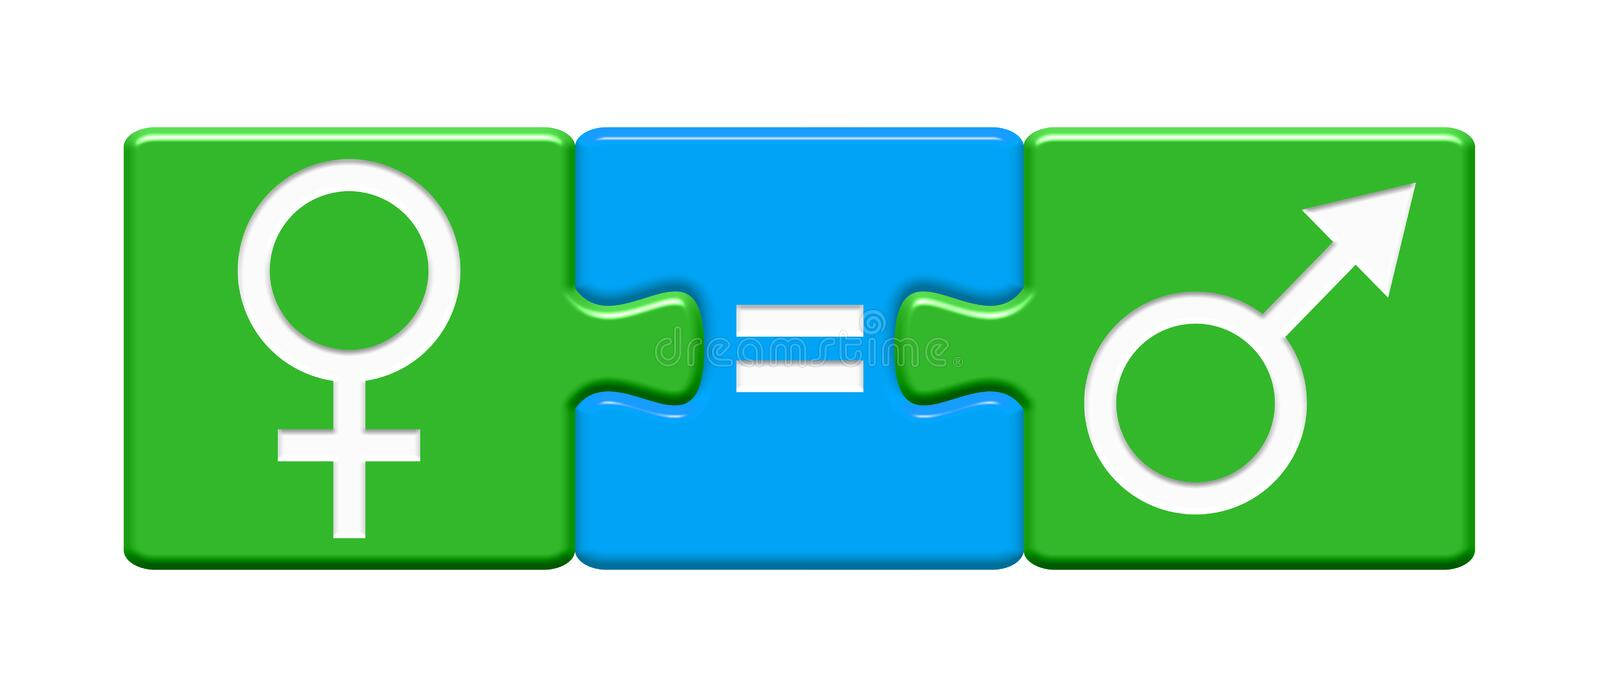 Male and female icon on Puzzle Button - Gender Equality. Puzzle Buttons showing Female equal Male stock illustration